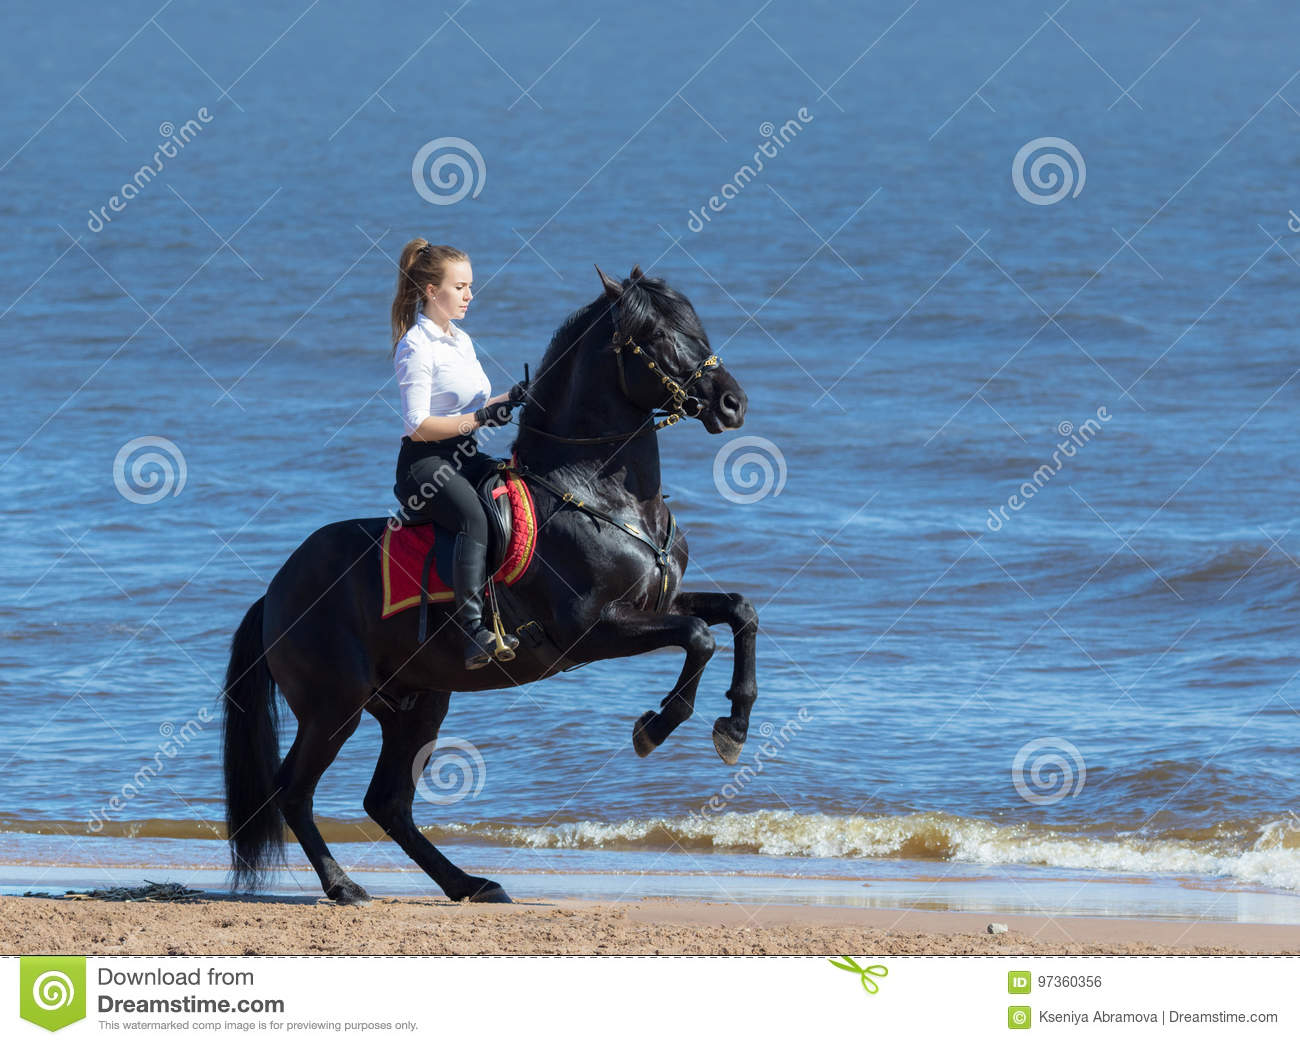 Woman riding horse on beach of sea. Stallion stands on hind legs